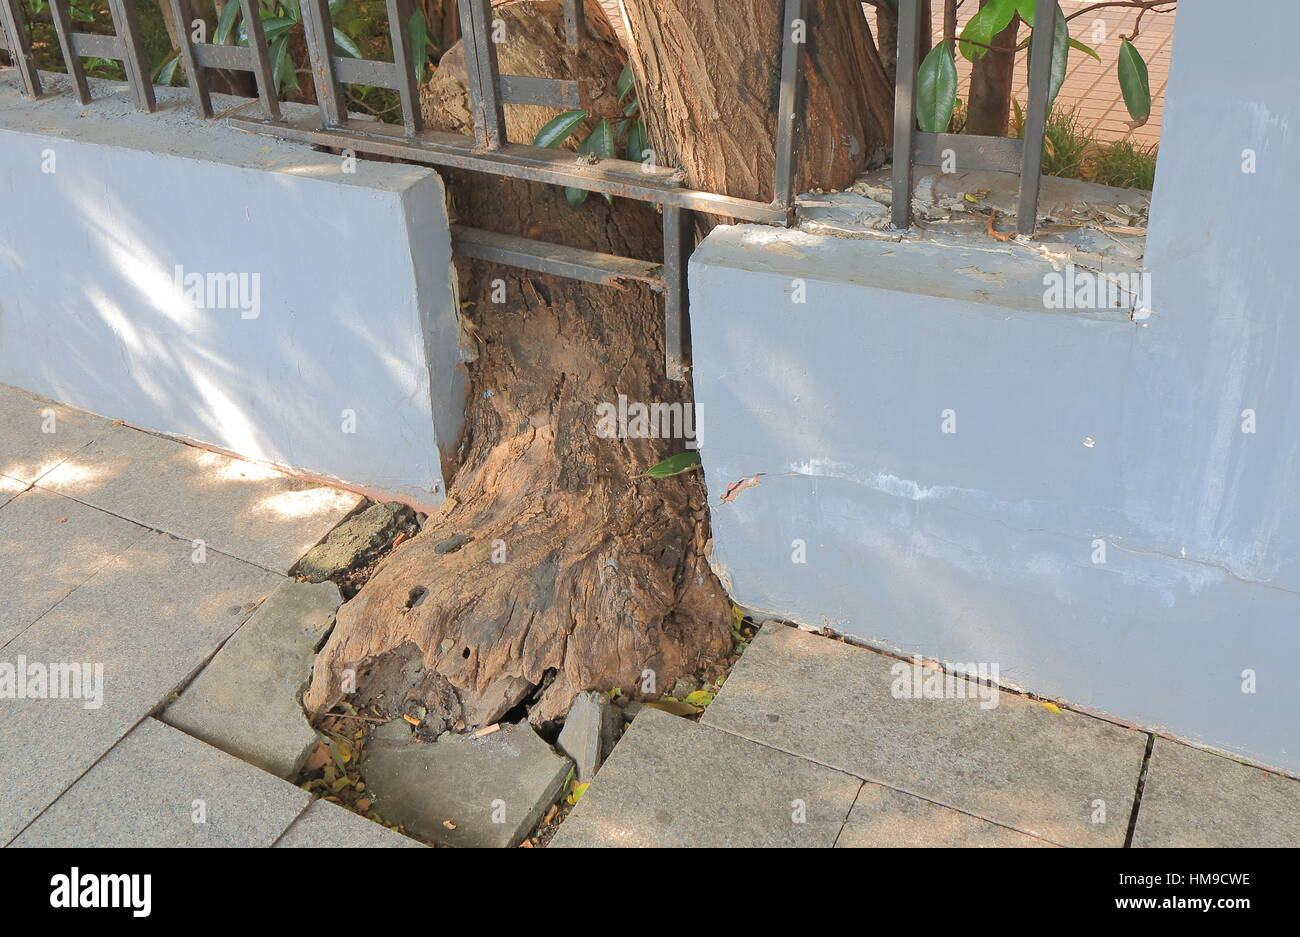 Structural damage caused by tree root in Shanghai China. - Stock Image